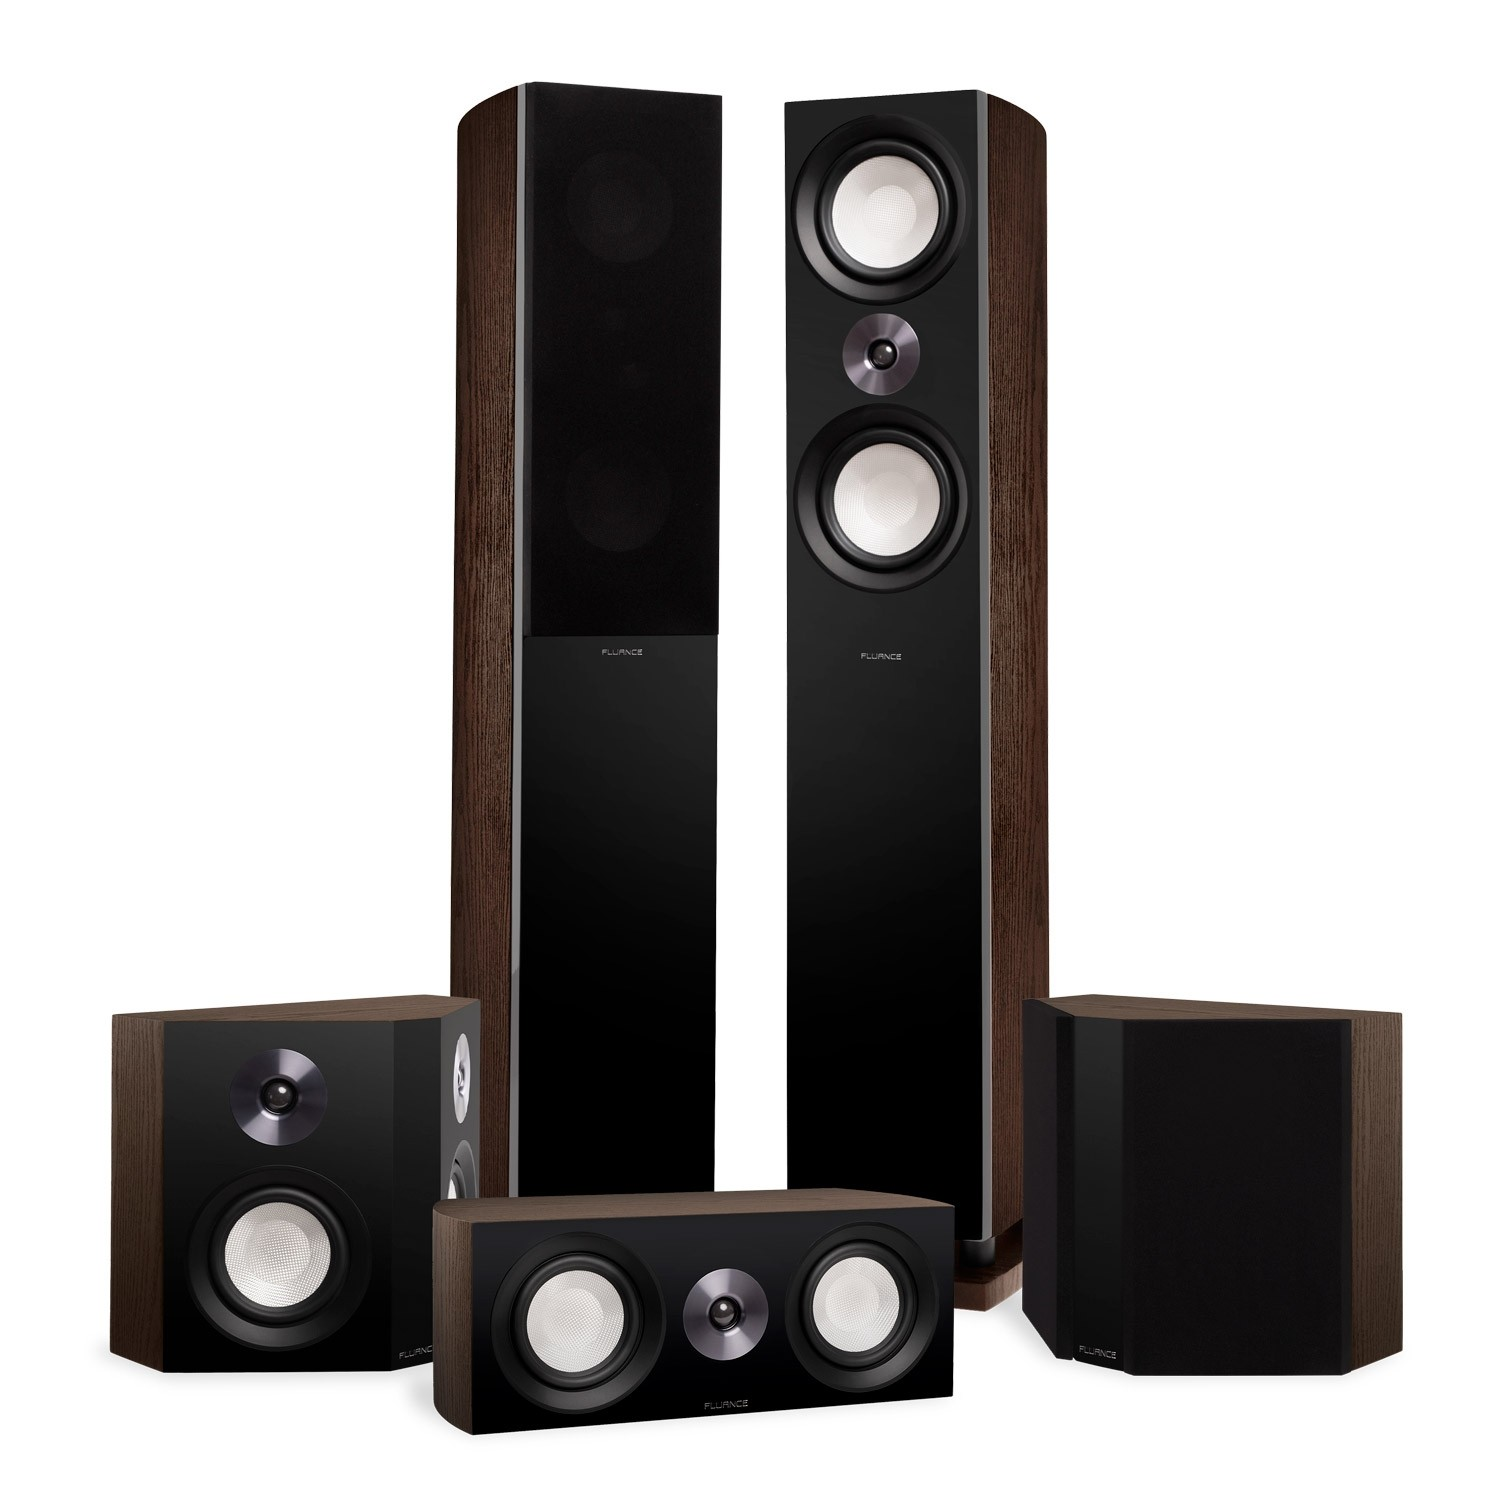 Reference Surround Sound Home Theater 5.0 Channel Speaker System with Bipolar Speakers